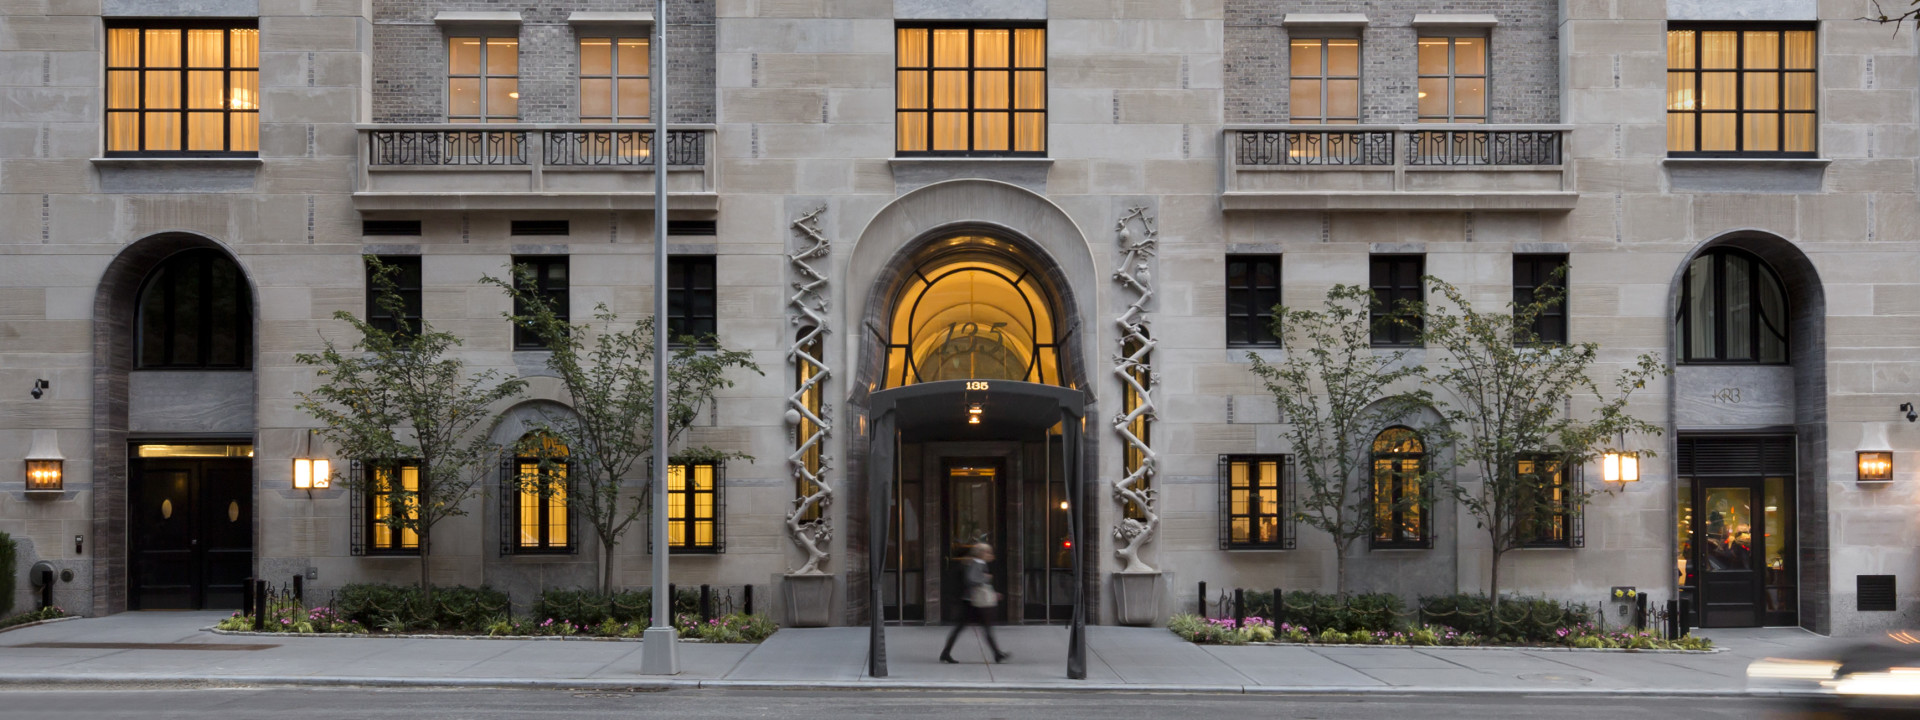 135 EAST 79TH ENTRANCE